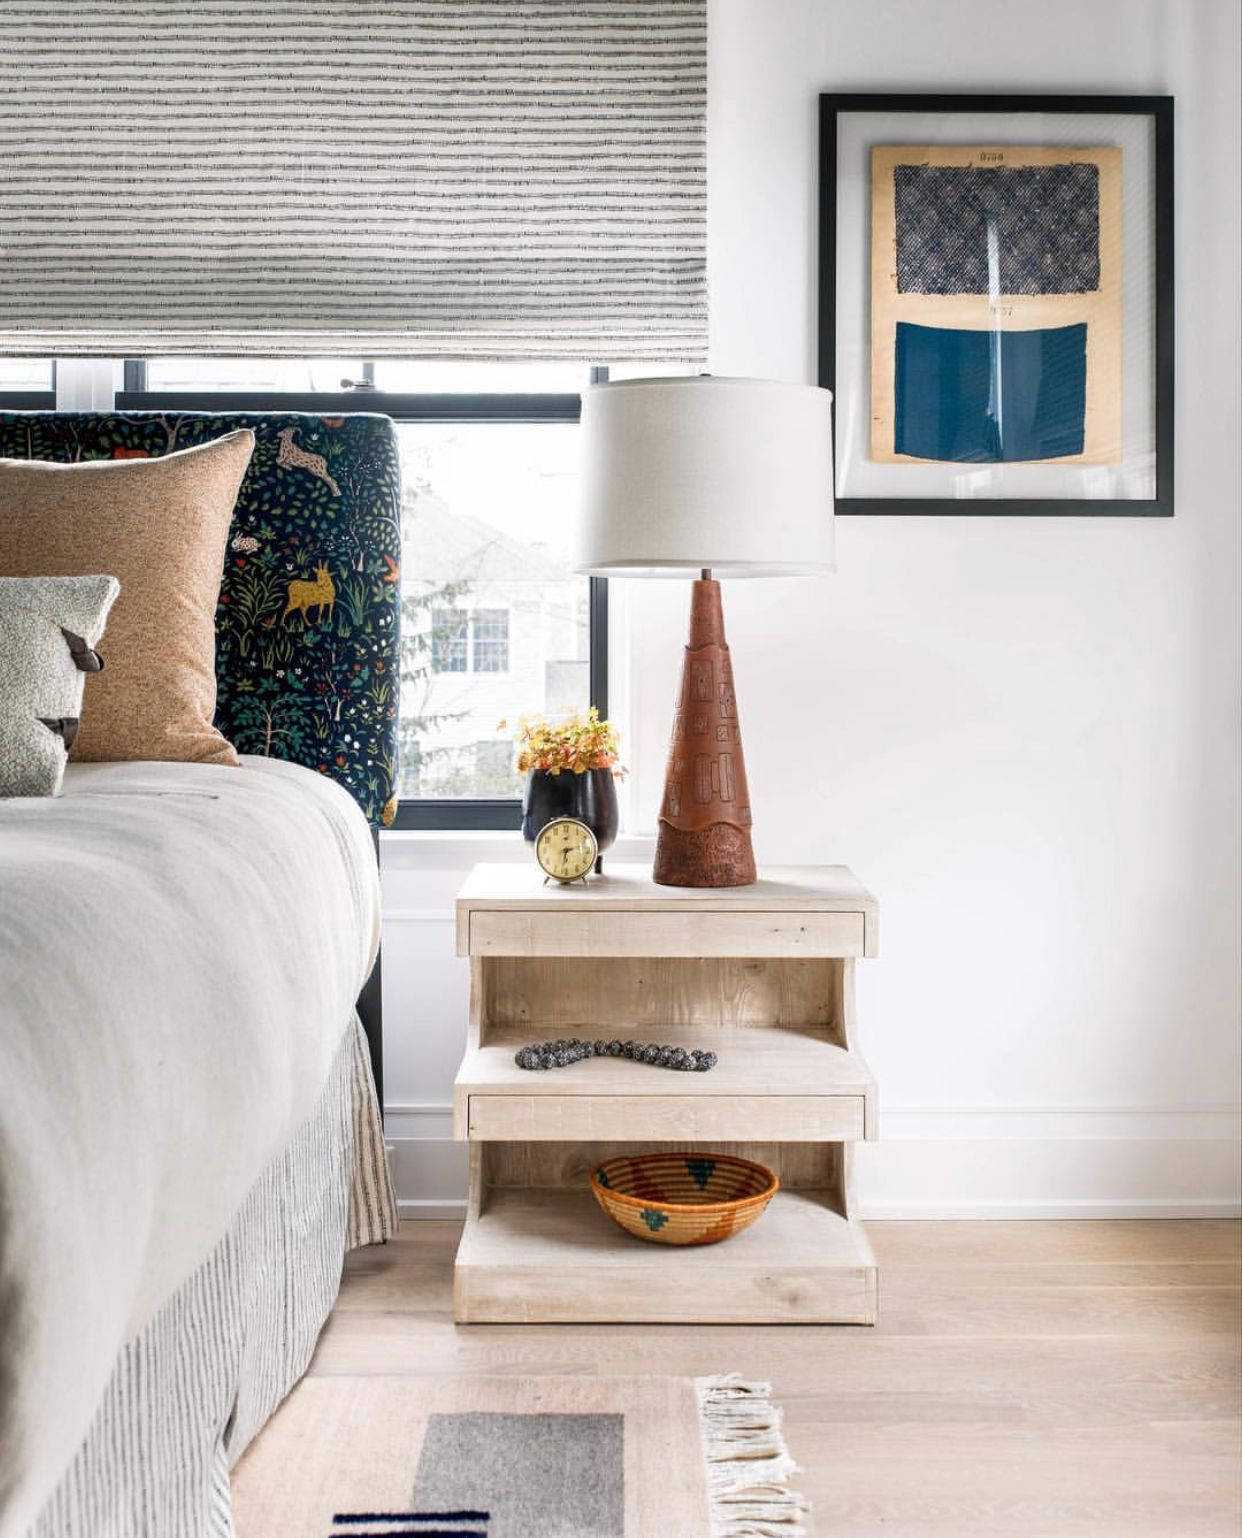 16 Bedroom Decorating Ideas With Exotic African Flavor: Cortney Bishop Design Bedroom Tiered Night Side Tables